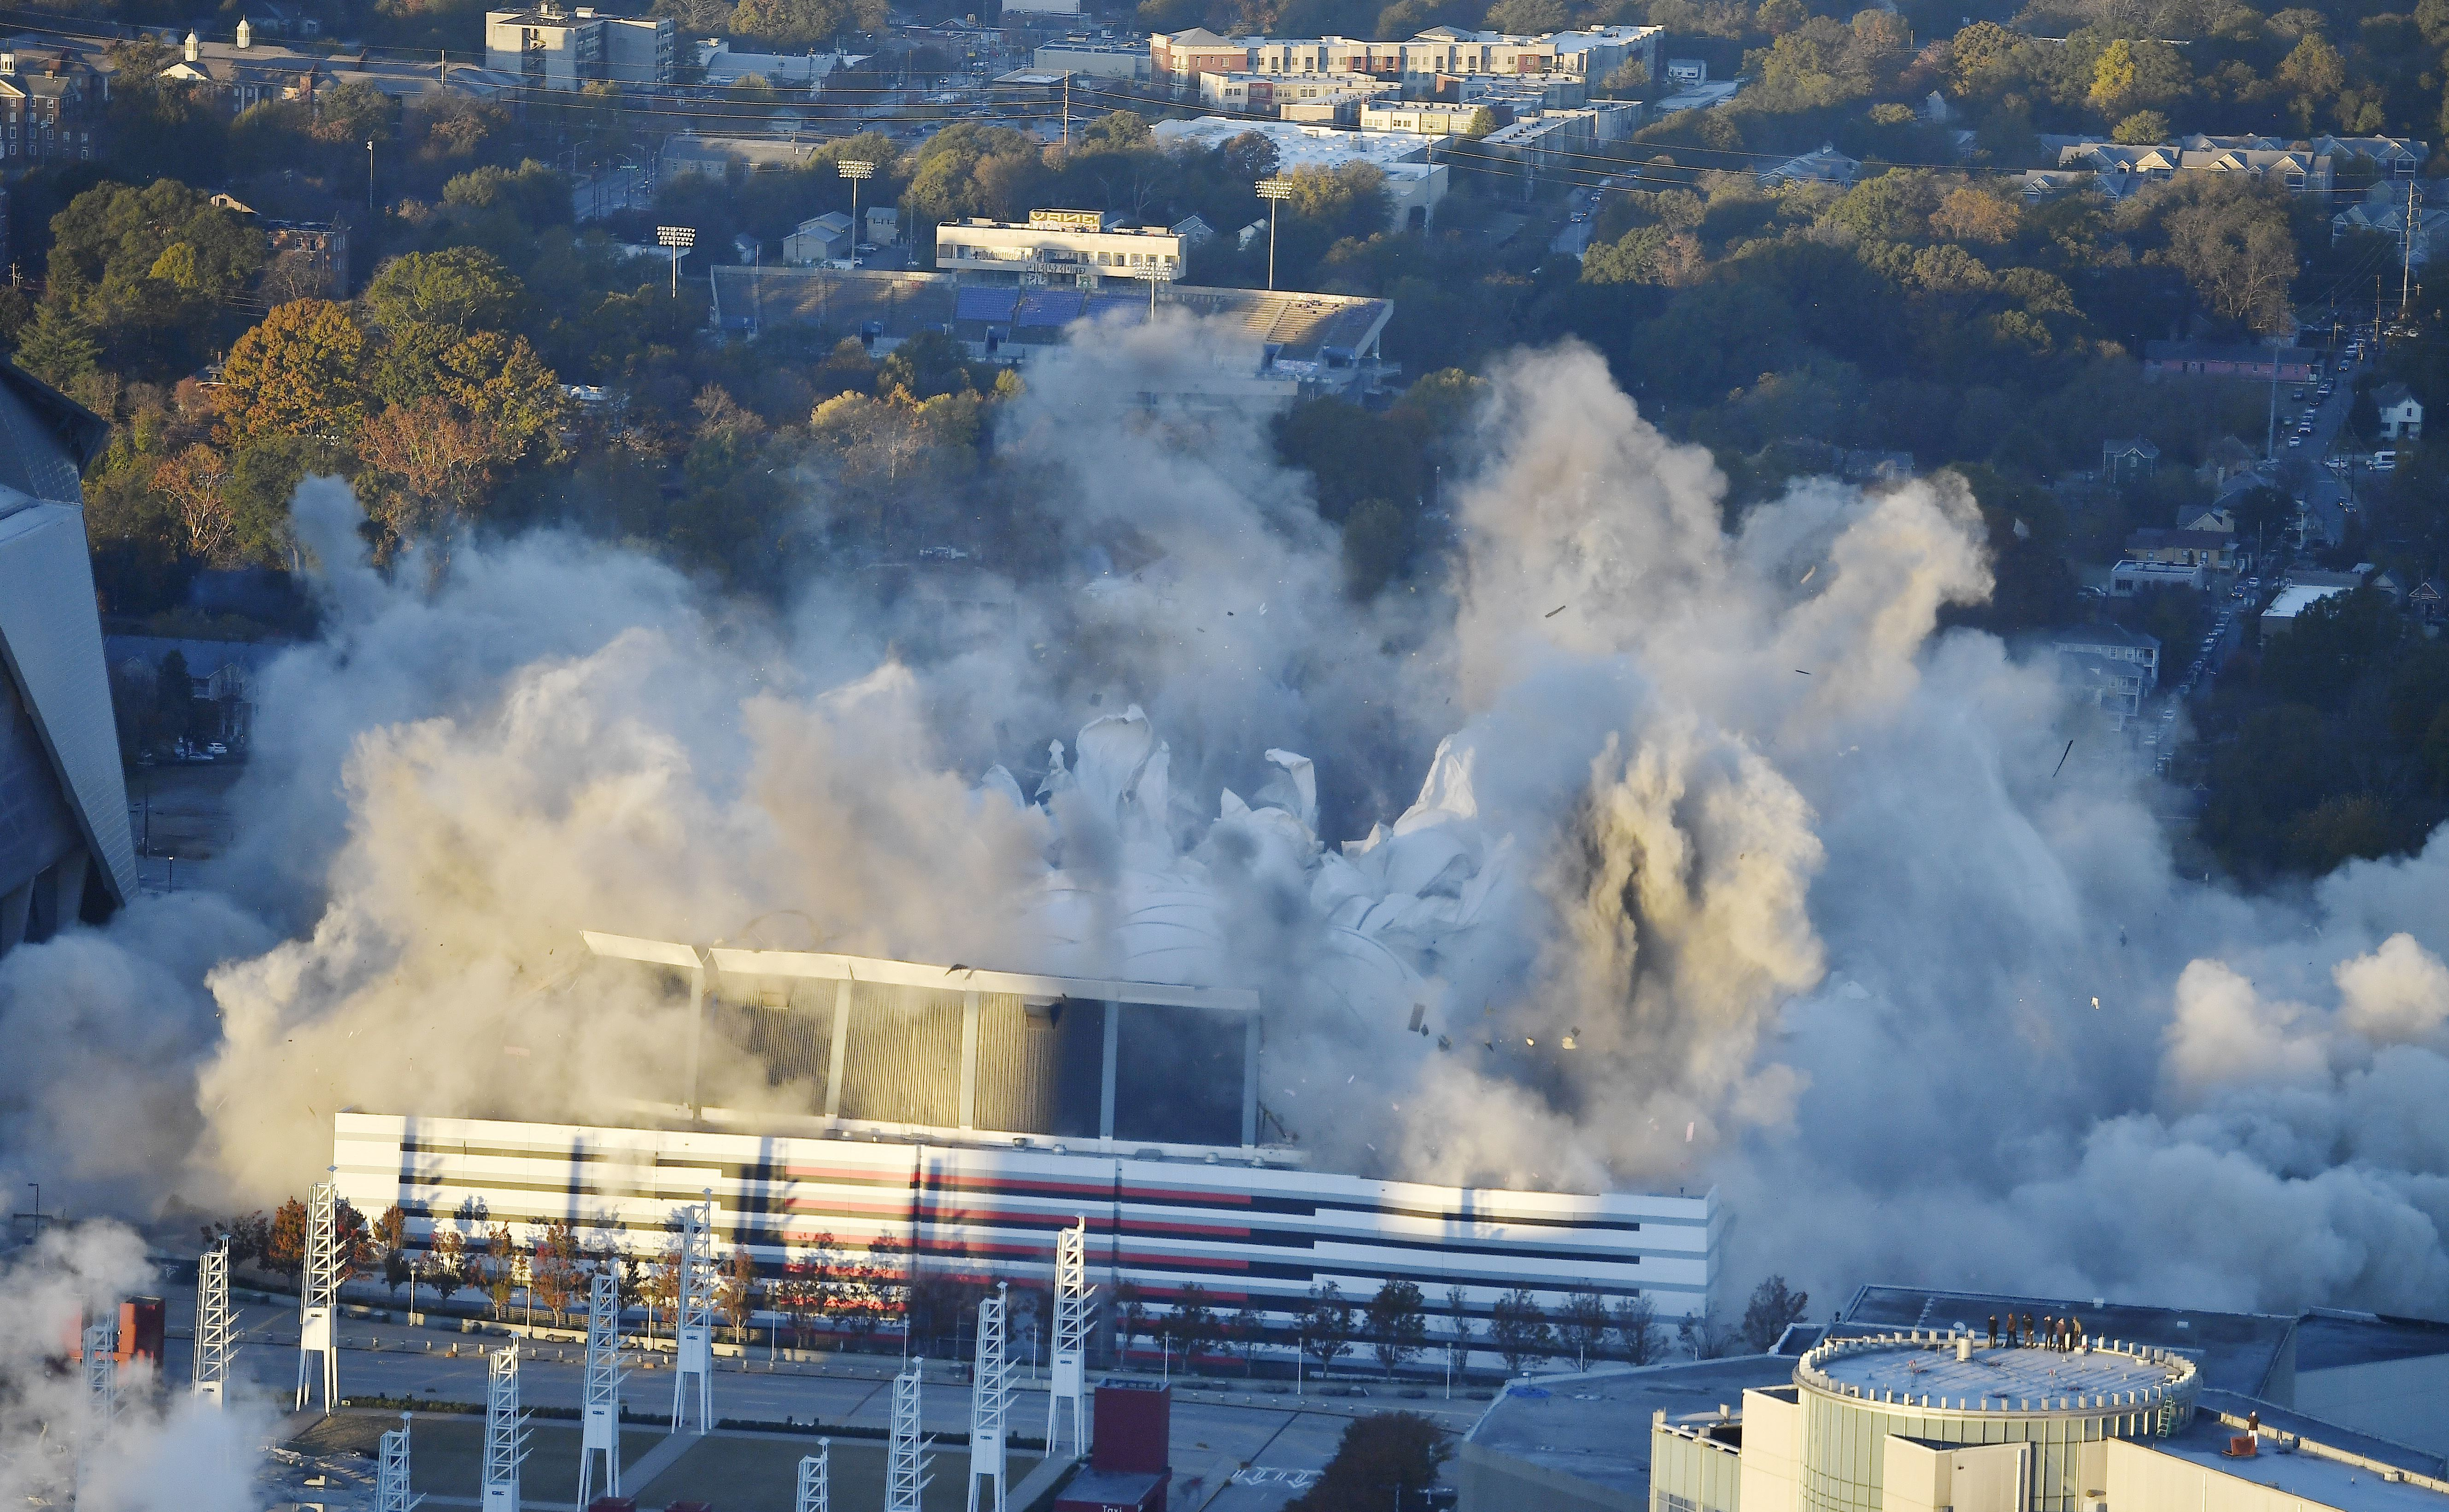 One of Our Biggest Domed Stadiums Just Imploded